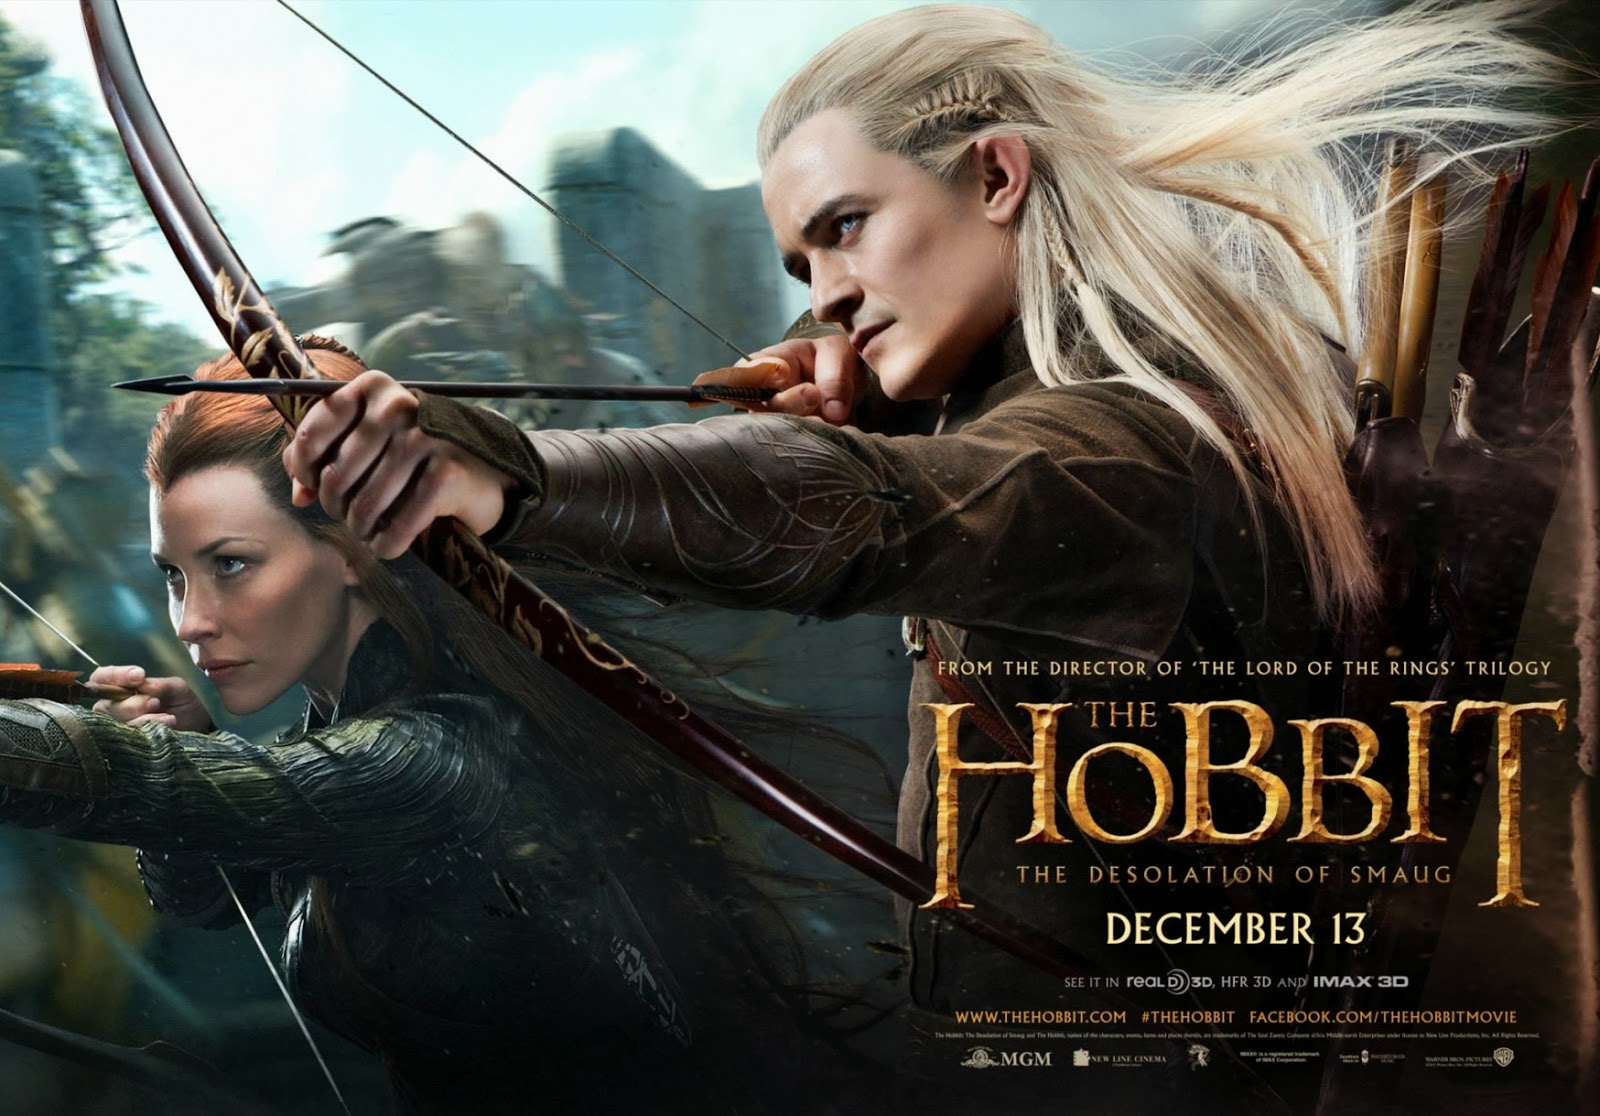 The Hobbit: The Desolation of Smaug - New Trailer & Banners